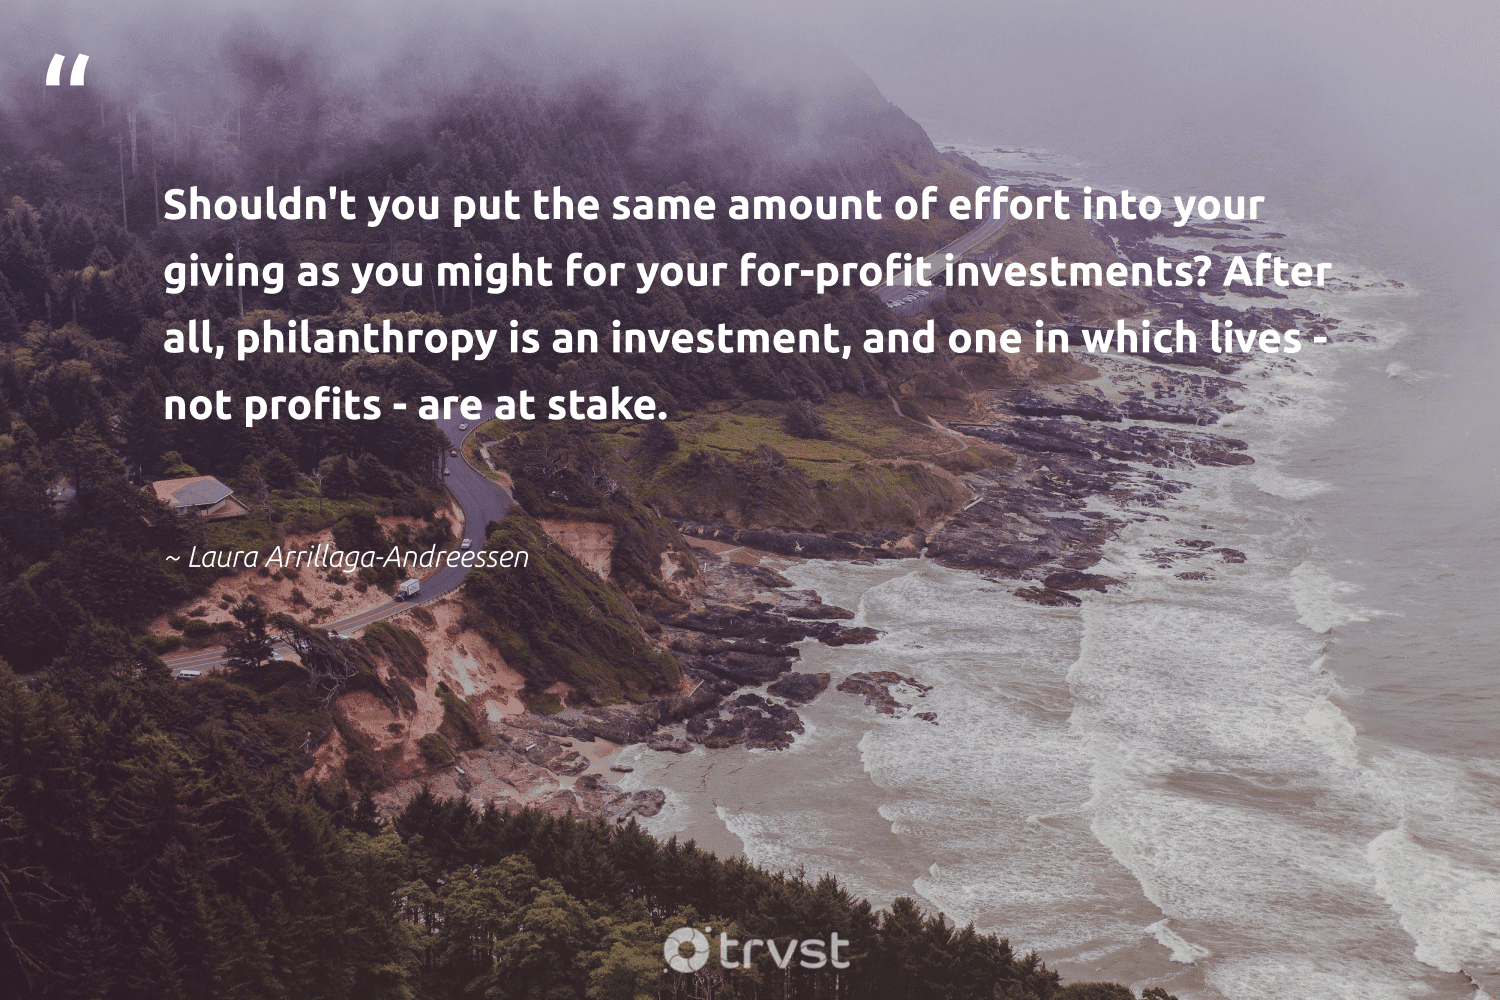 """""""Shouldn't you put the same amount of effort into your giving as you might for your for-profit investments? After all, philanthropy is an investment, and one in which lives - not profits - are at stake.""""  - Laura Arrillaga-Andreessen #trvst #quotes #philanthropy #philanthropic #togetherwecan #giveforthefuture #gogreen #changemakers #itscooltobekind #thinkgreen #dogood #dotherightthing"""